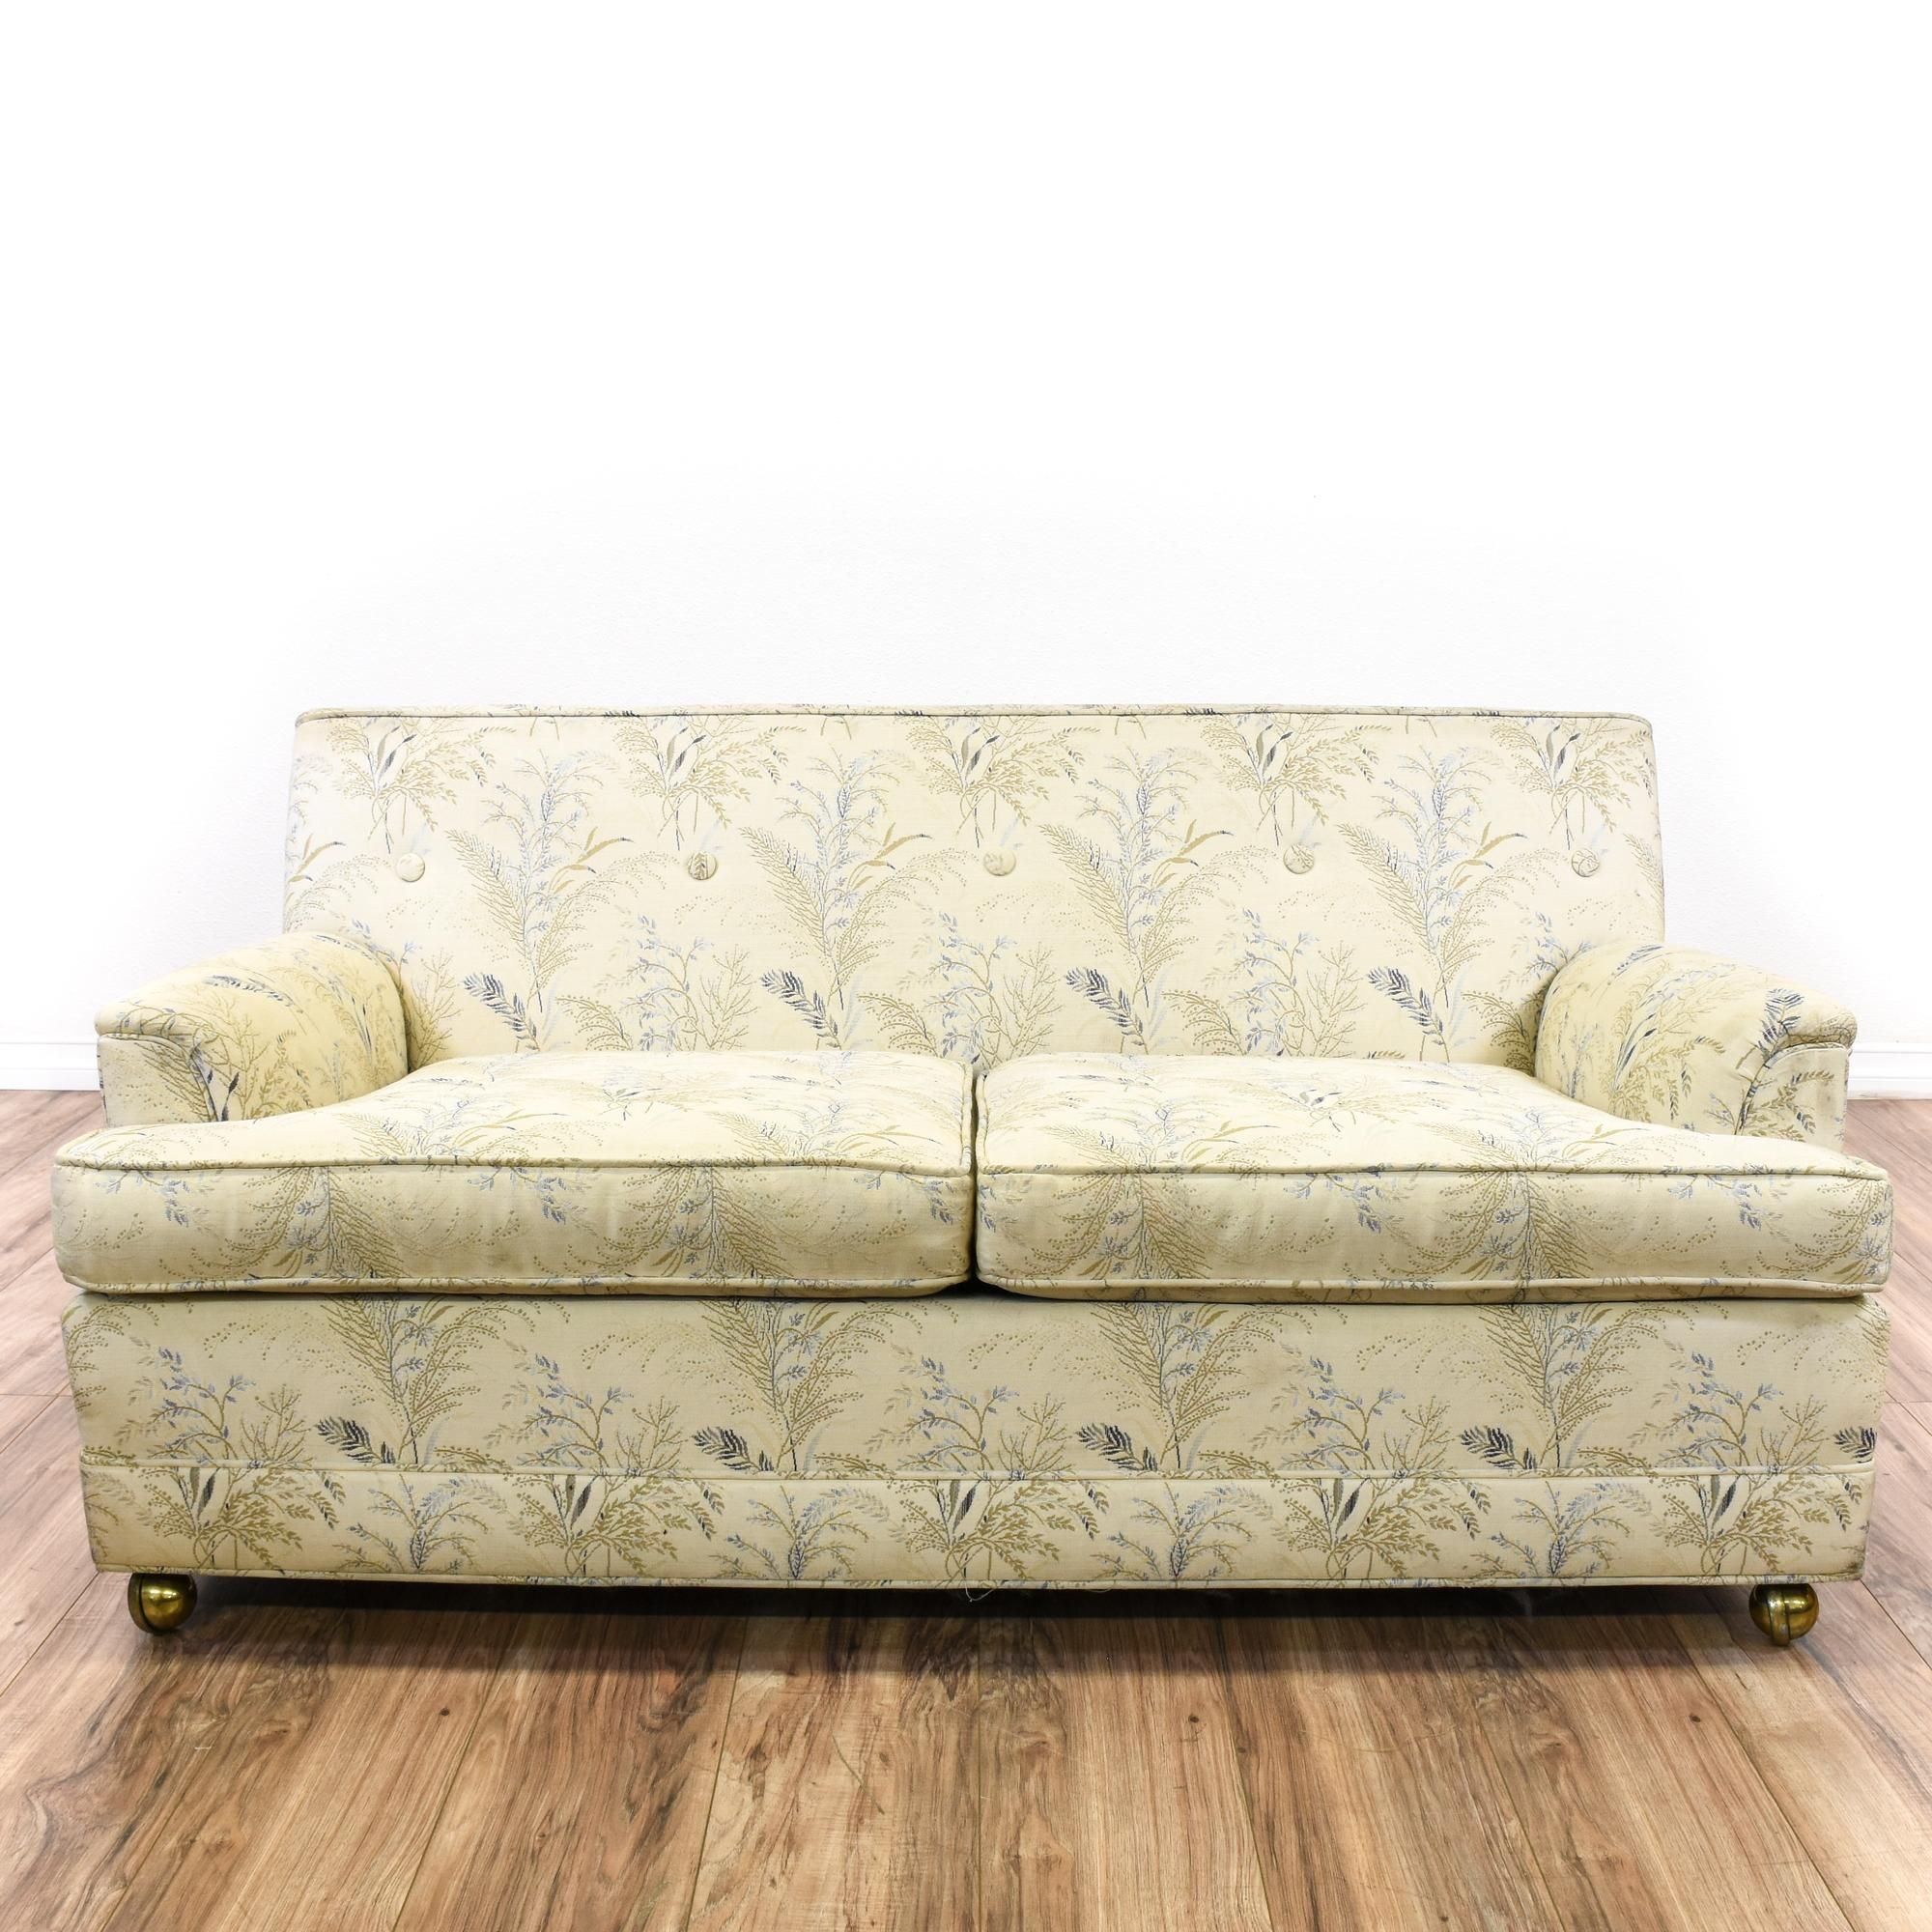 loveseat decorating exterior and covers couch fresh slipcover interior ideas home pattern slipcovers room decor marvelous design